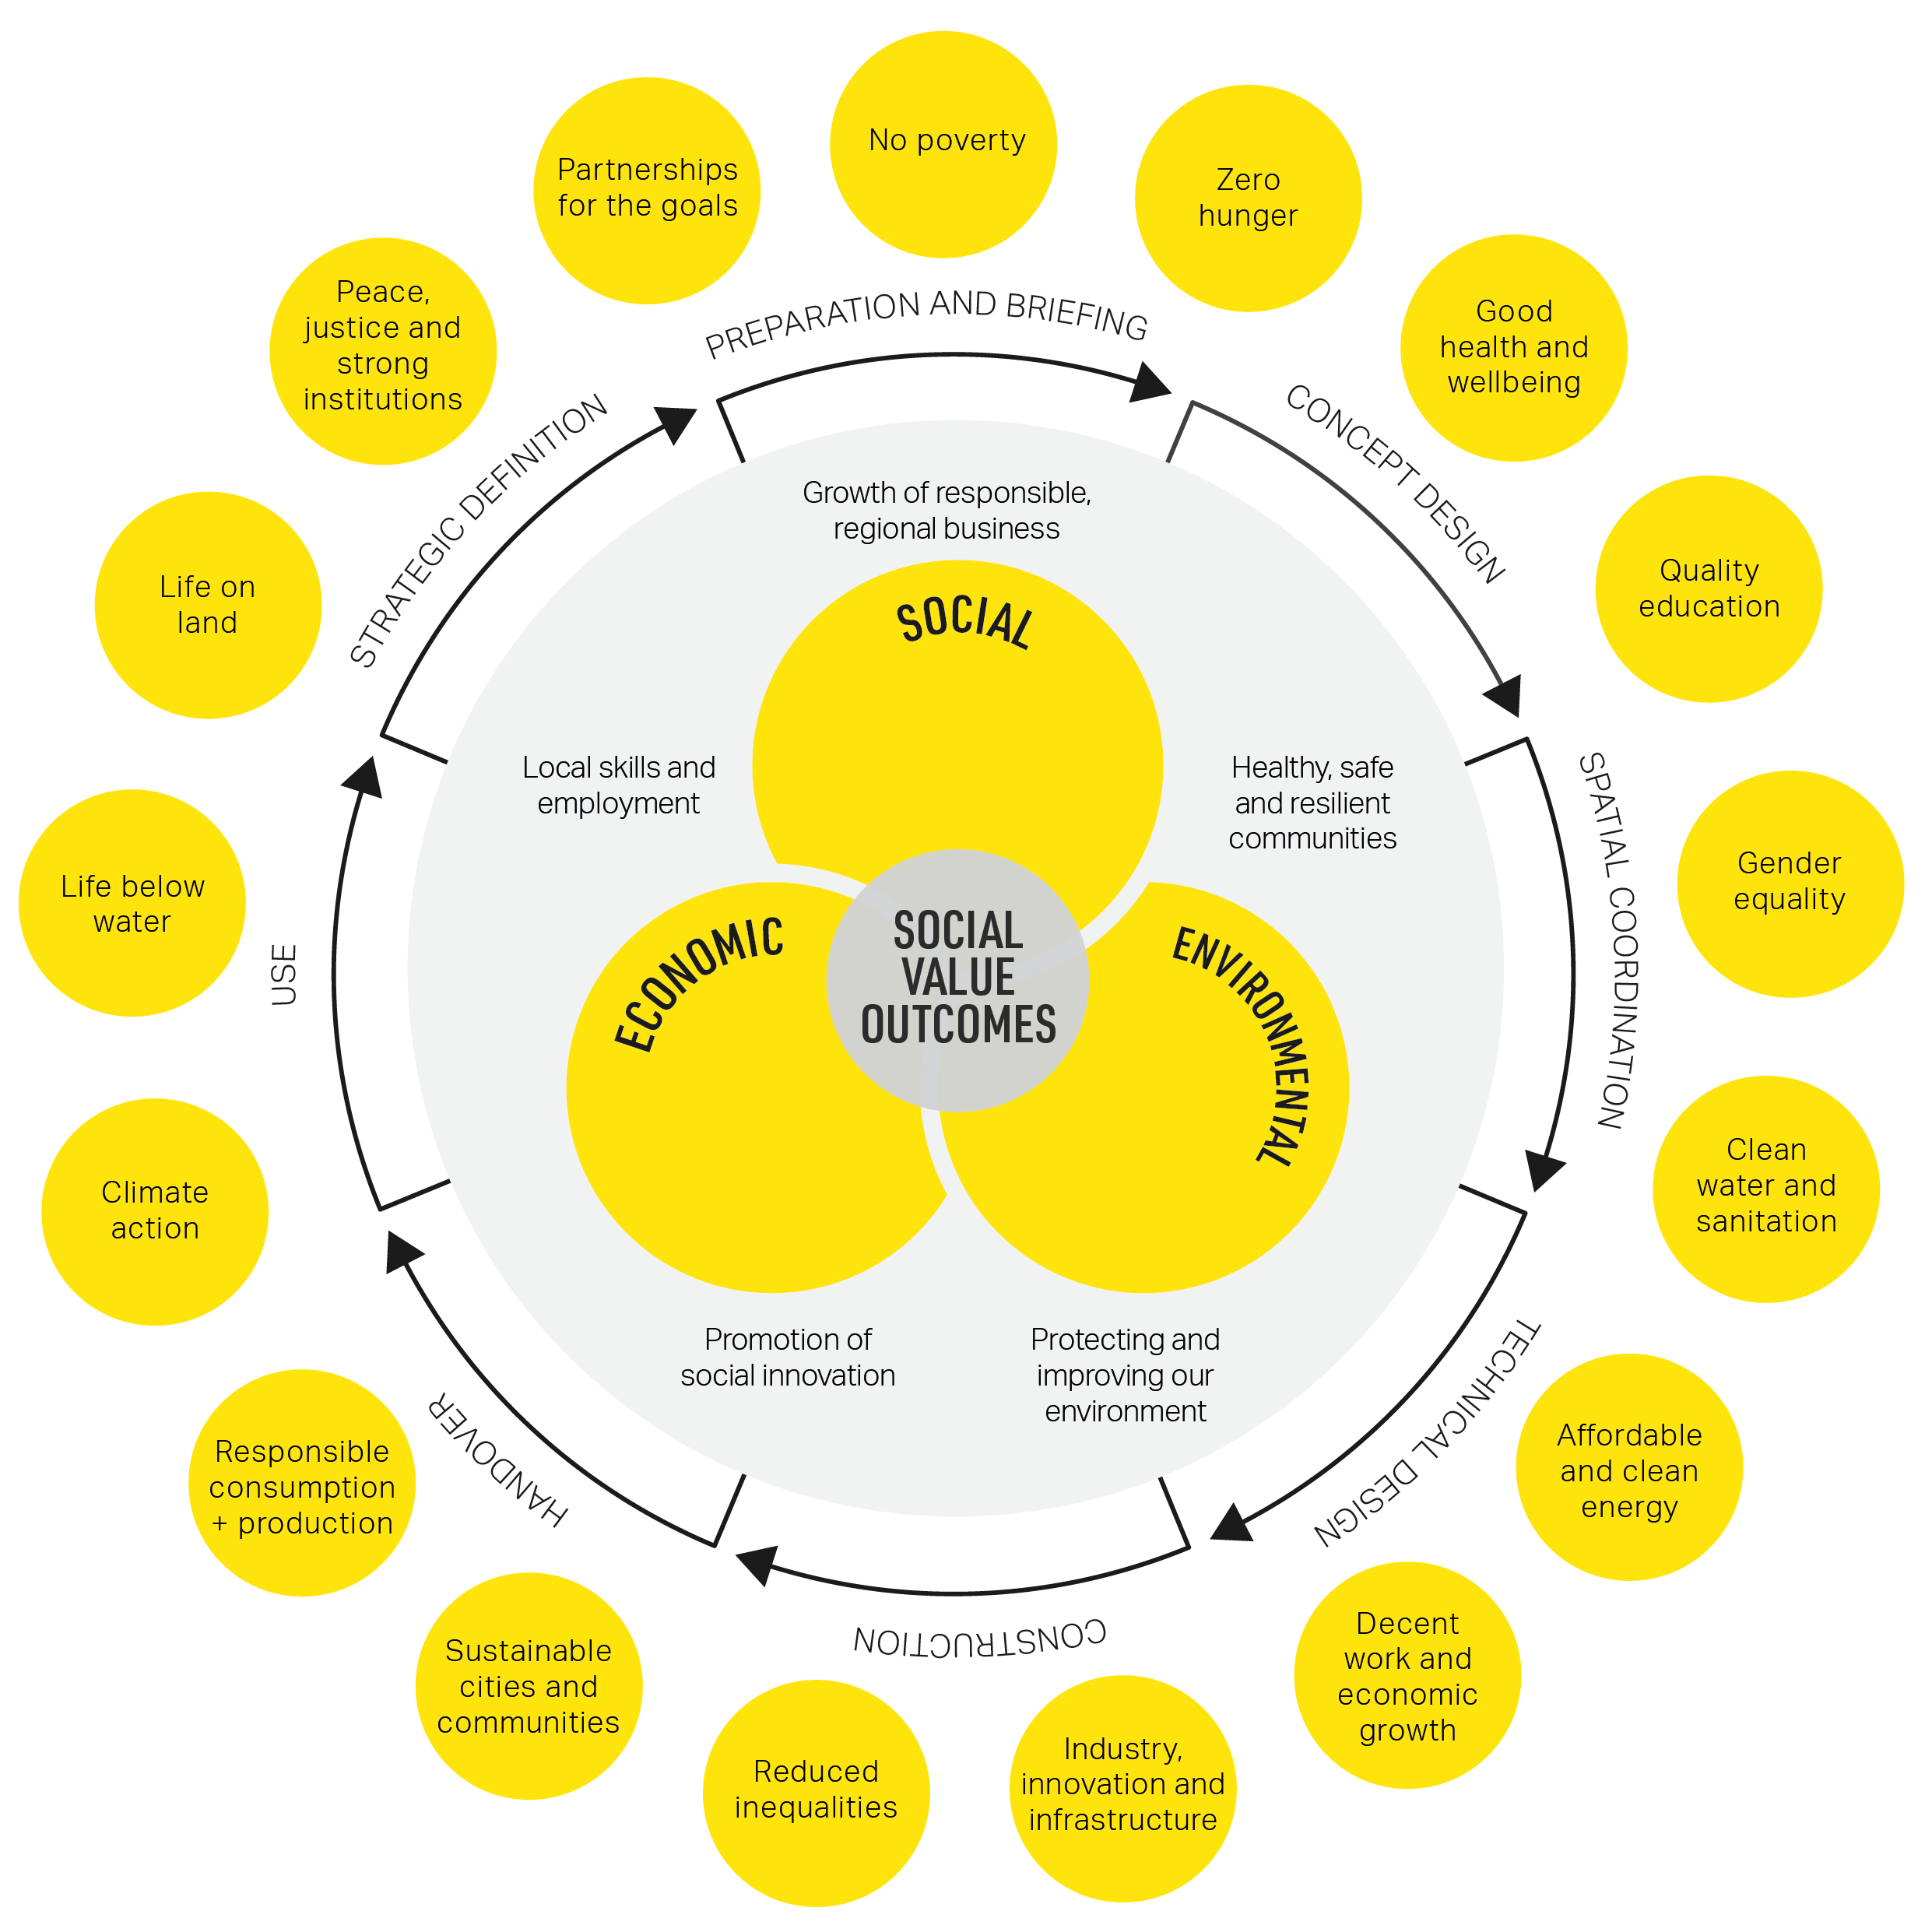 Social value outcomes and lifecycle